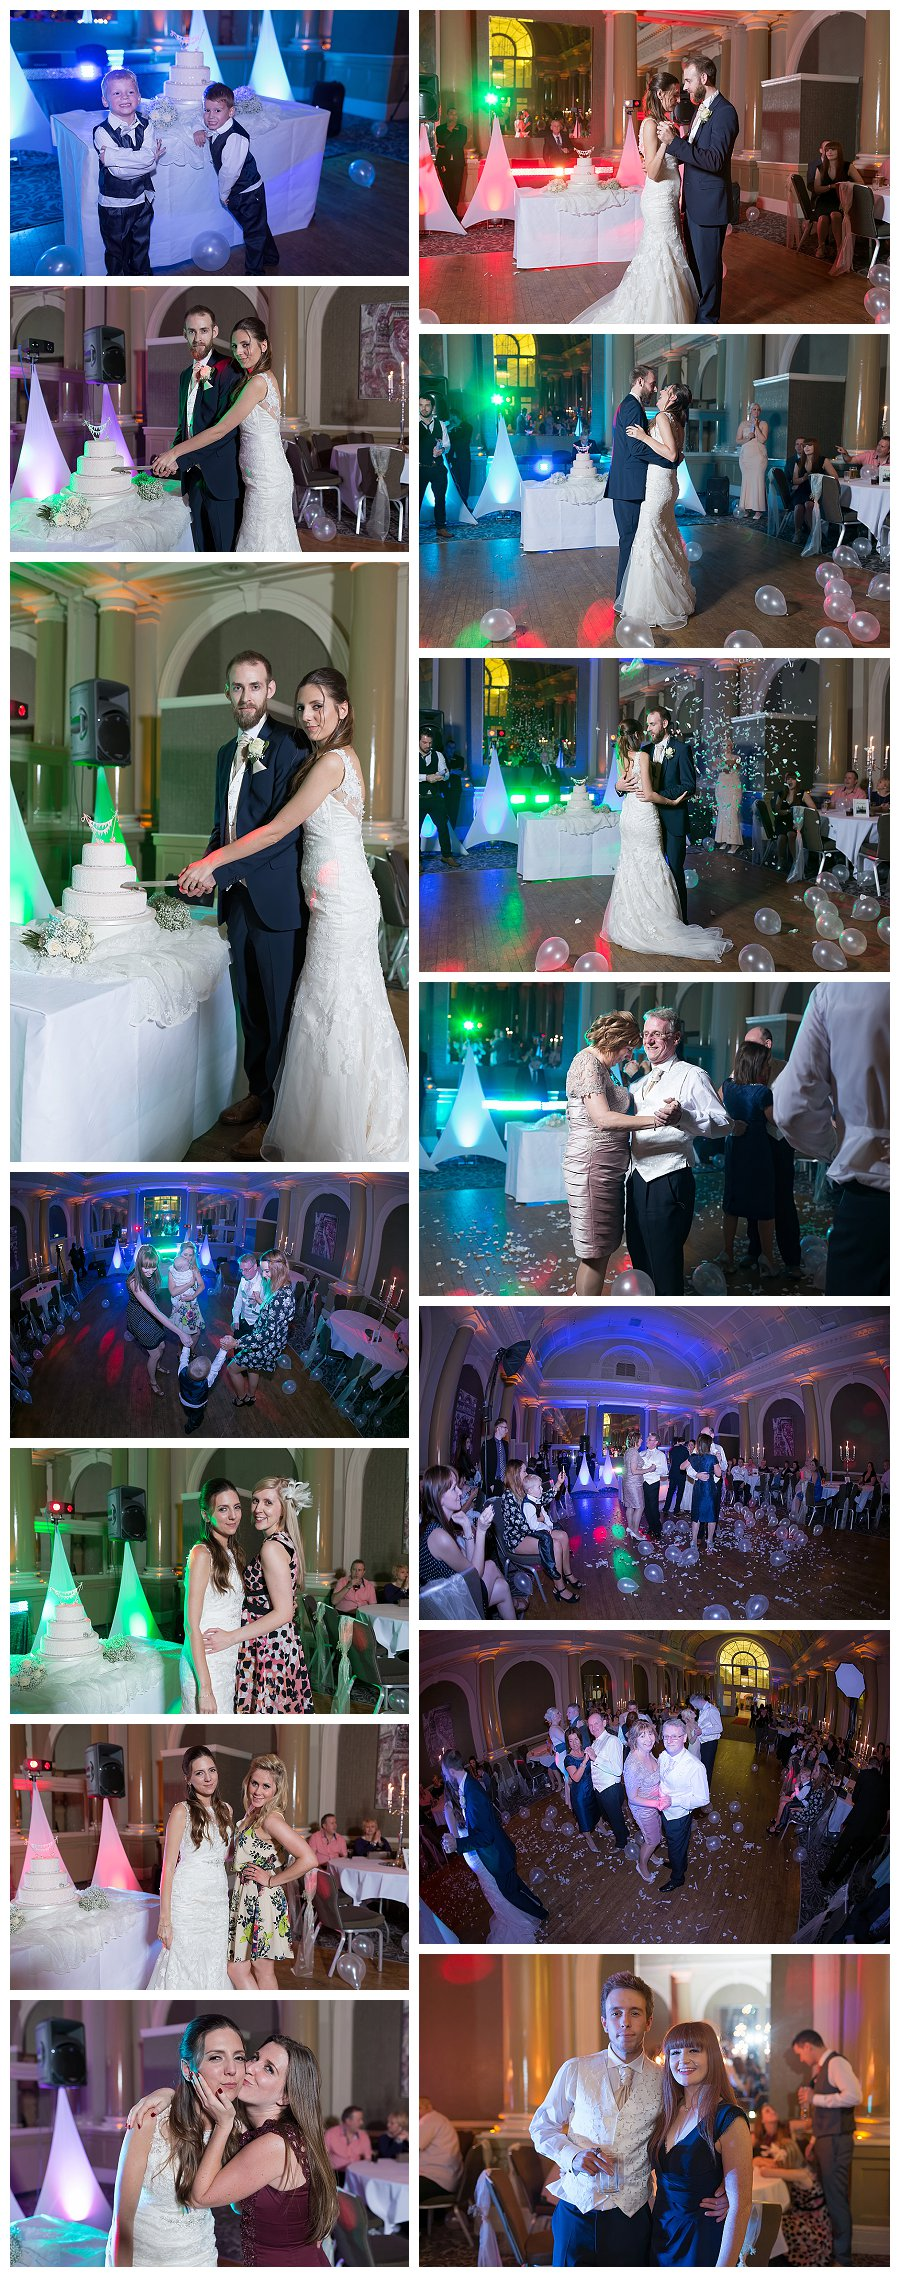 Leeds metropole hotel wedding photography, met hotel wedding photos Leeds, getting married at Leeds met hotel